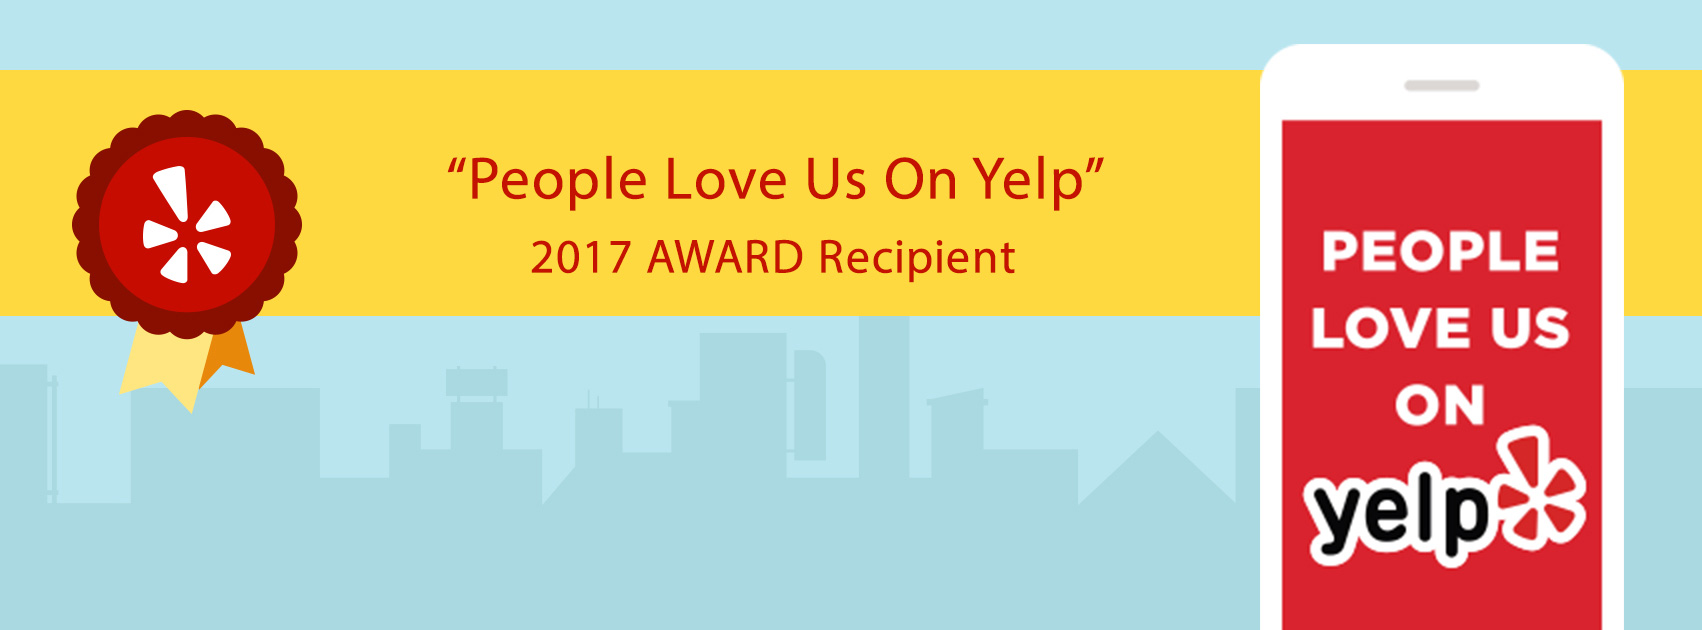 2017 Yelp Award Winner